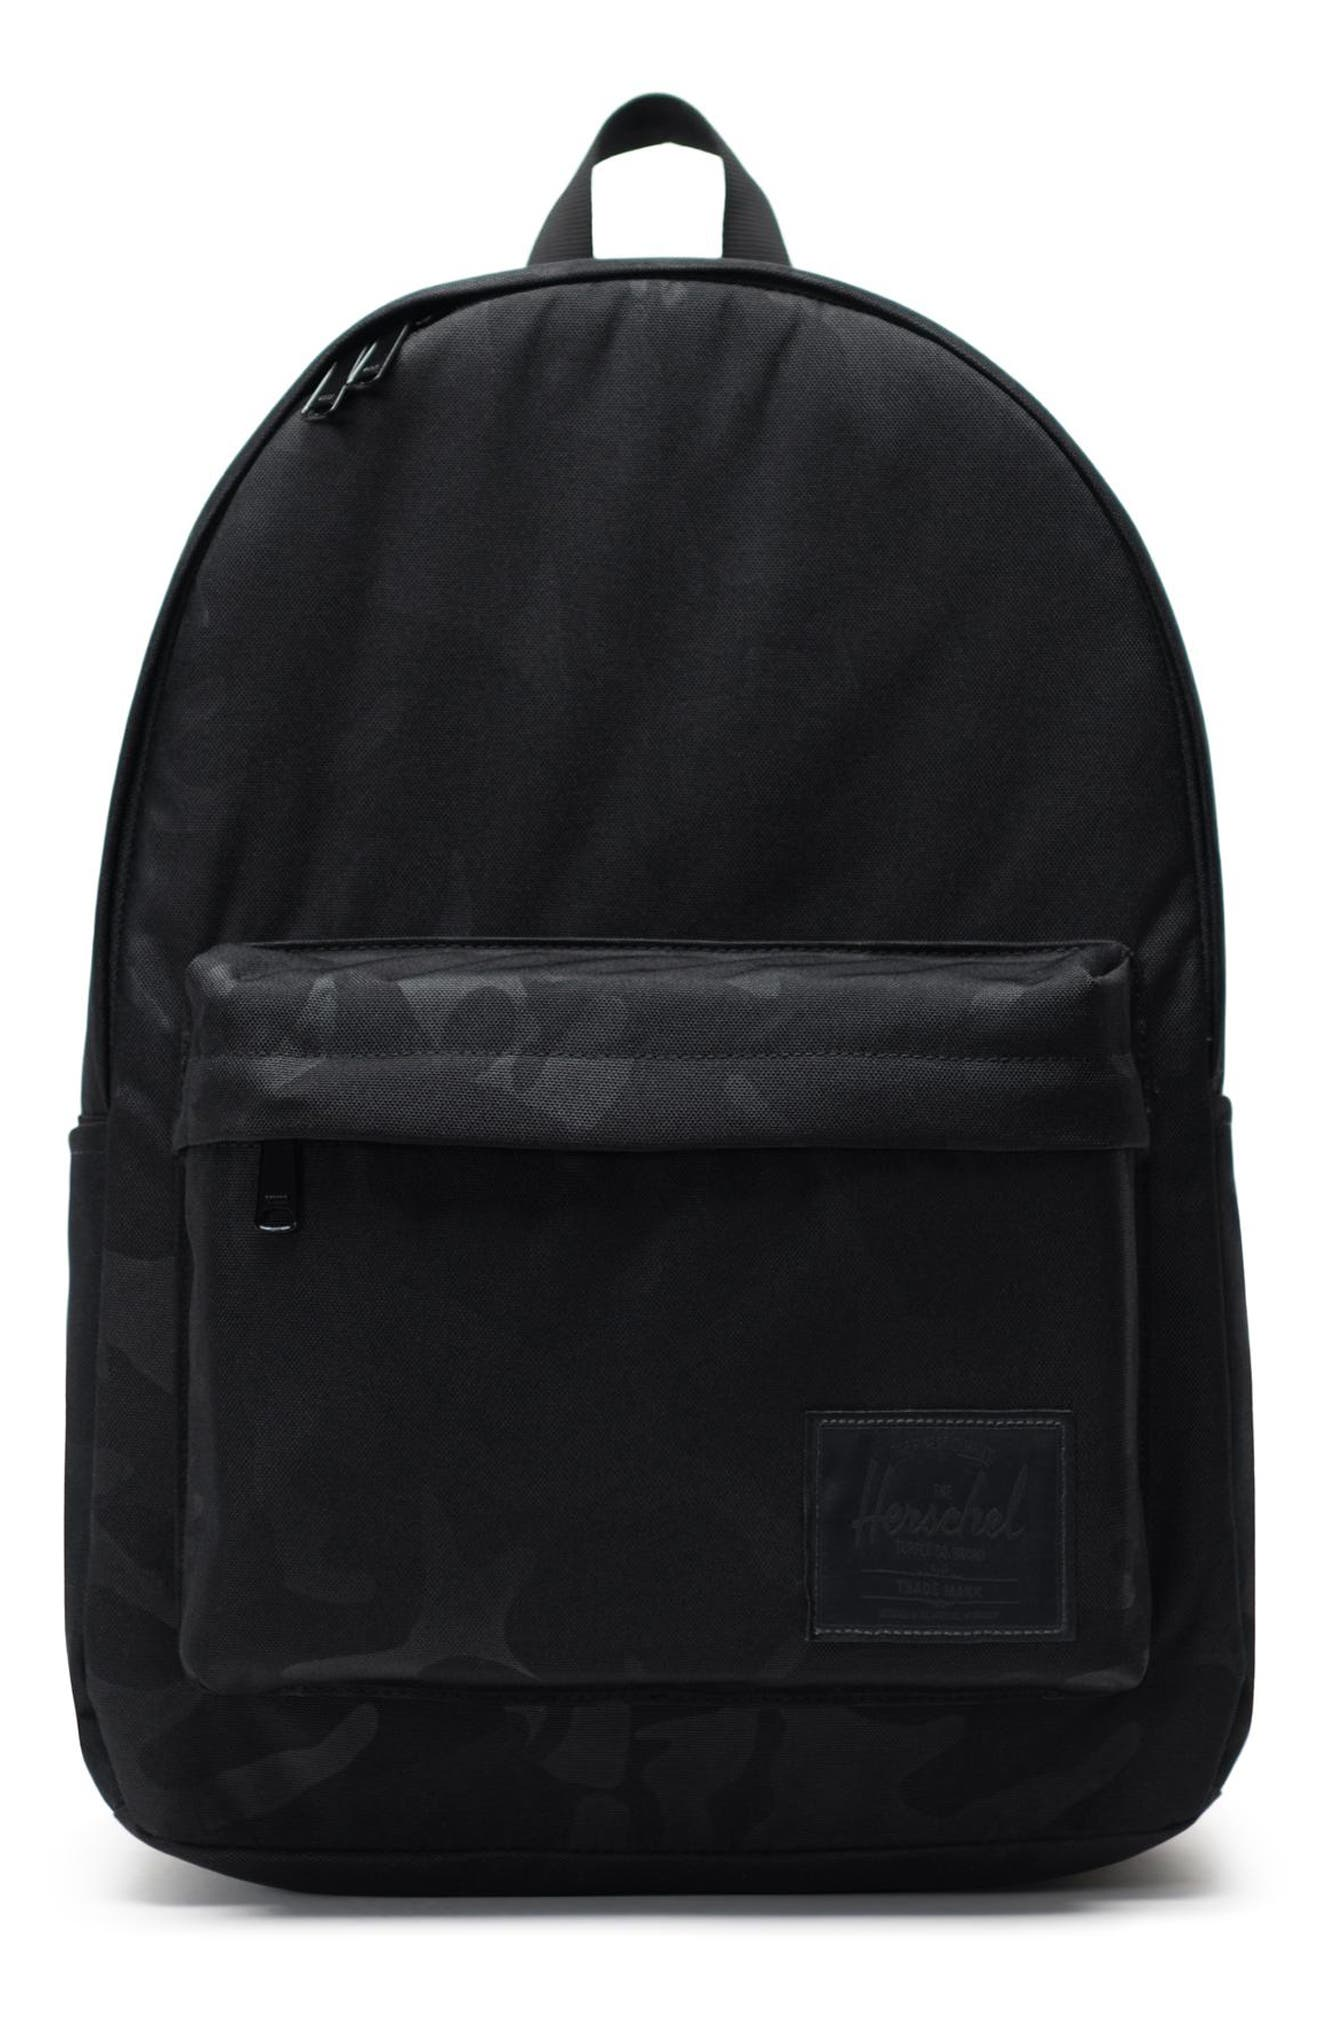 HERSCHEL SUPPLY CO. Classic XL Backpack, Main, color, BLACK/ TONAL CAMO